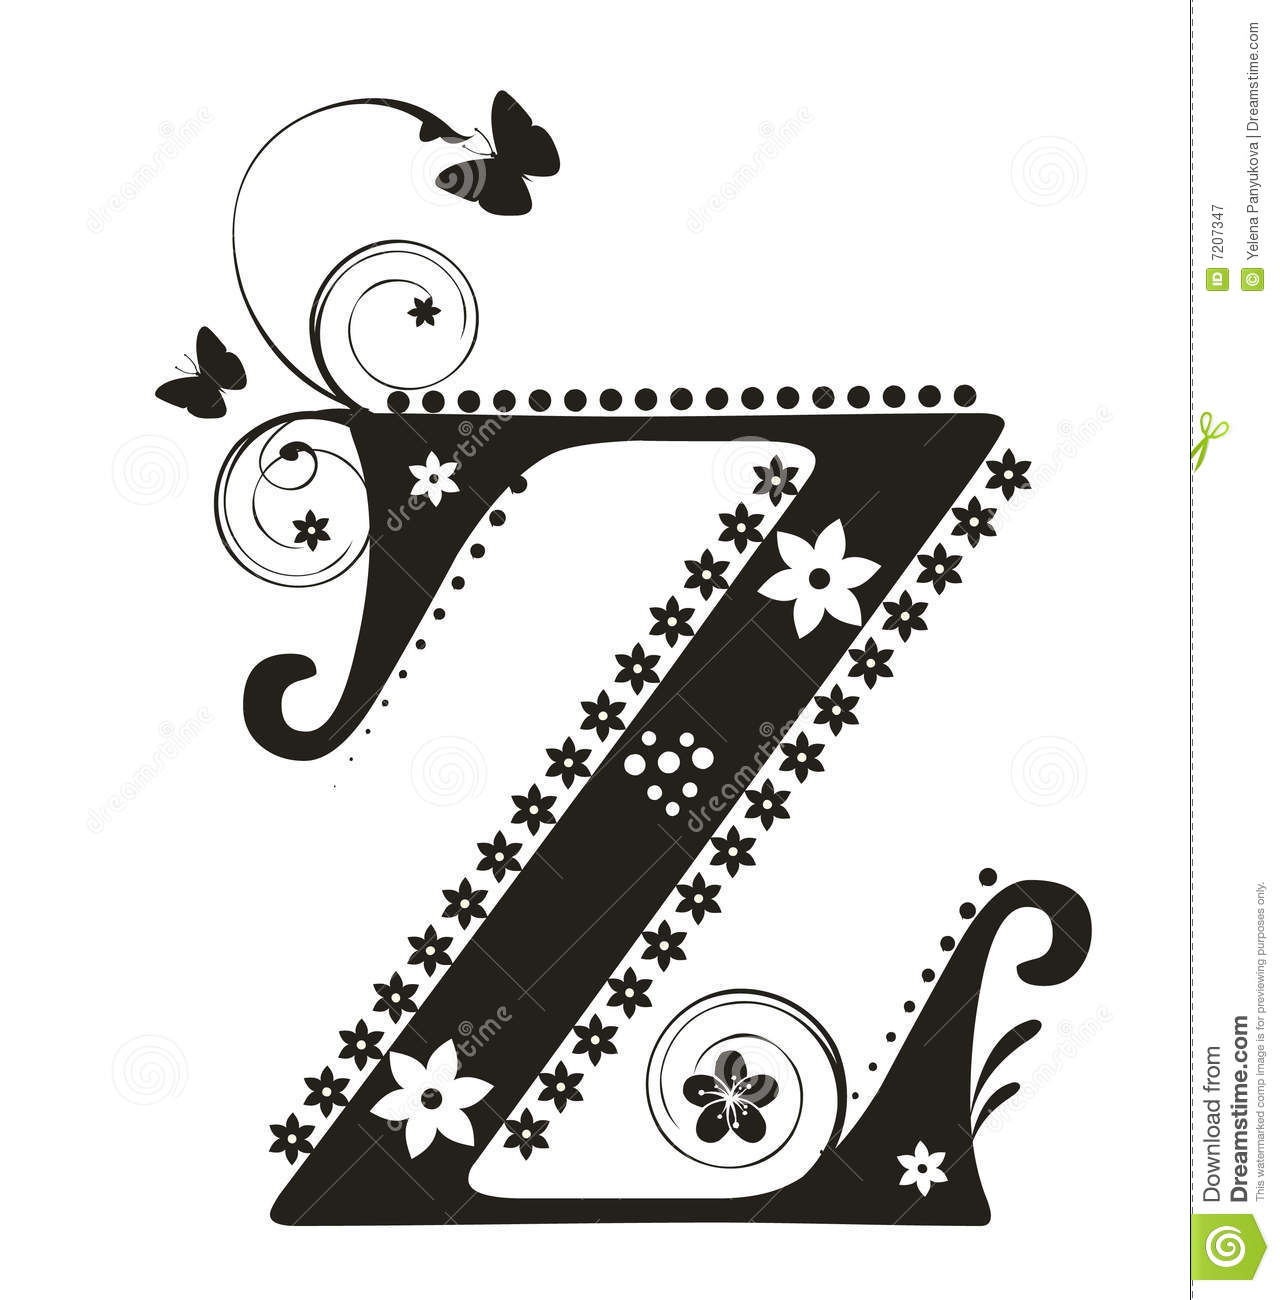 Letter Z Royalty Free Stock Photography Image 7207347